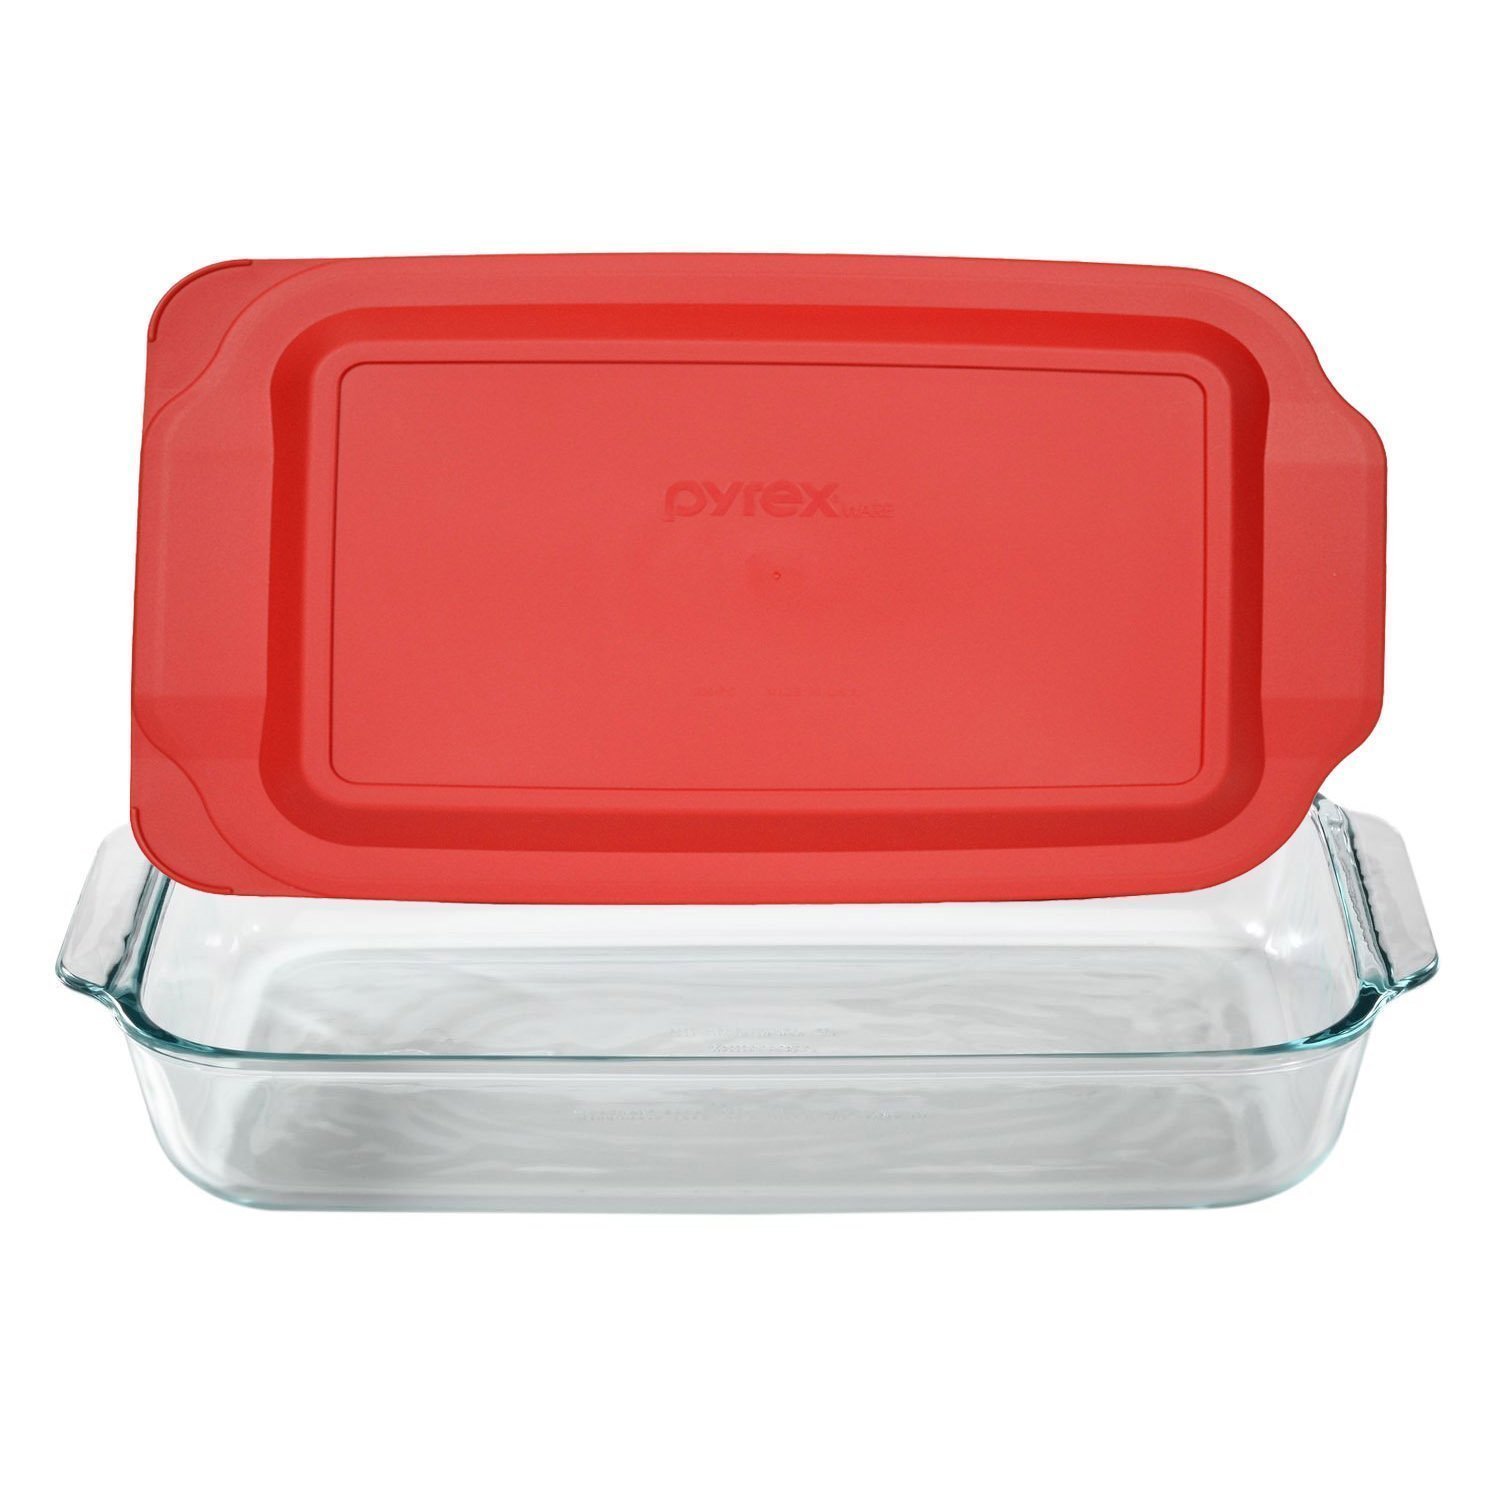 Pyrex SYNCHKG117579 Basics 3-qt Oblong with Red Cover KC12026 2PK-3QT